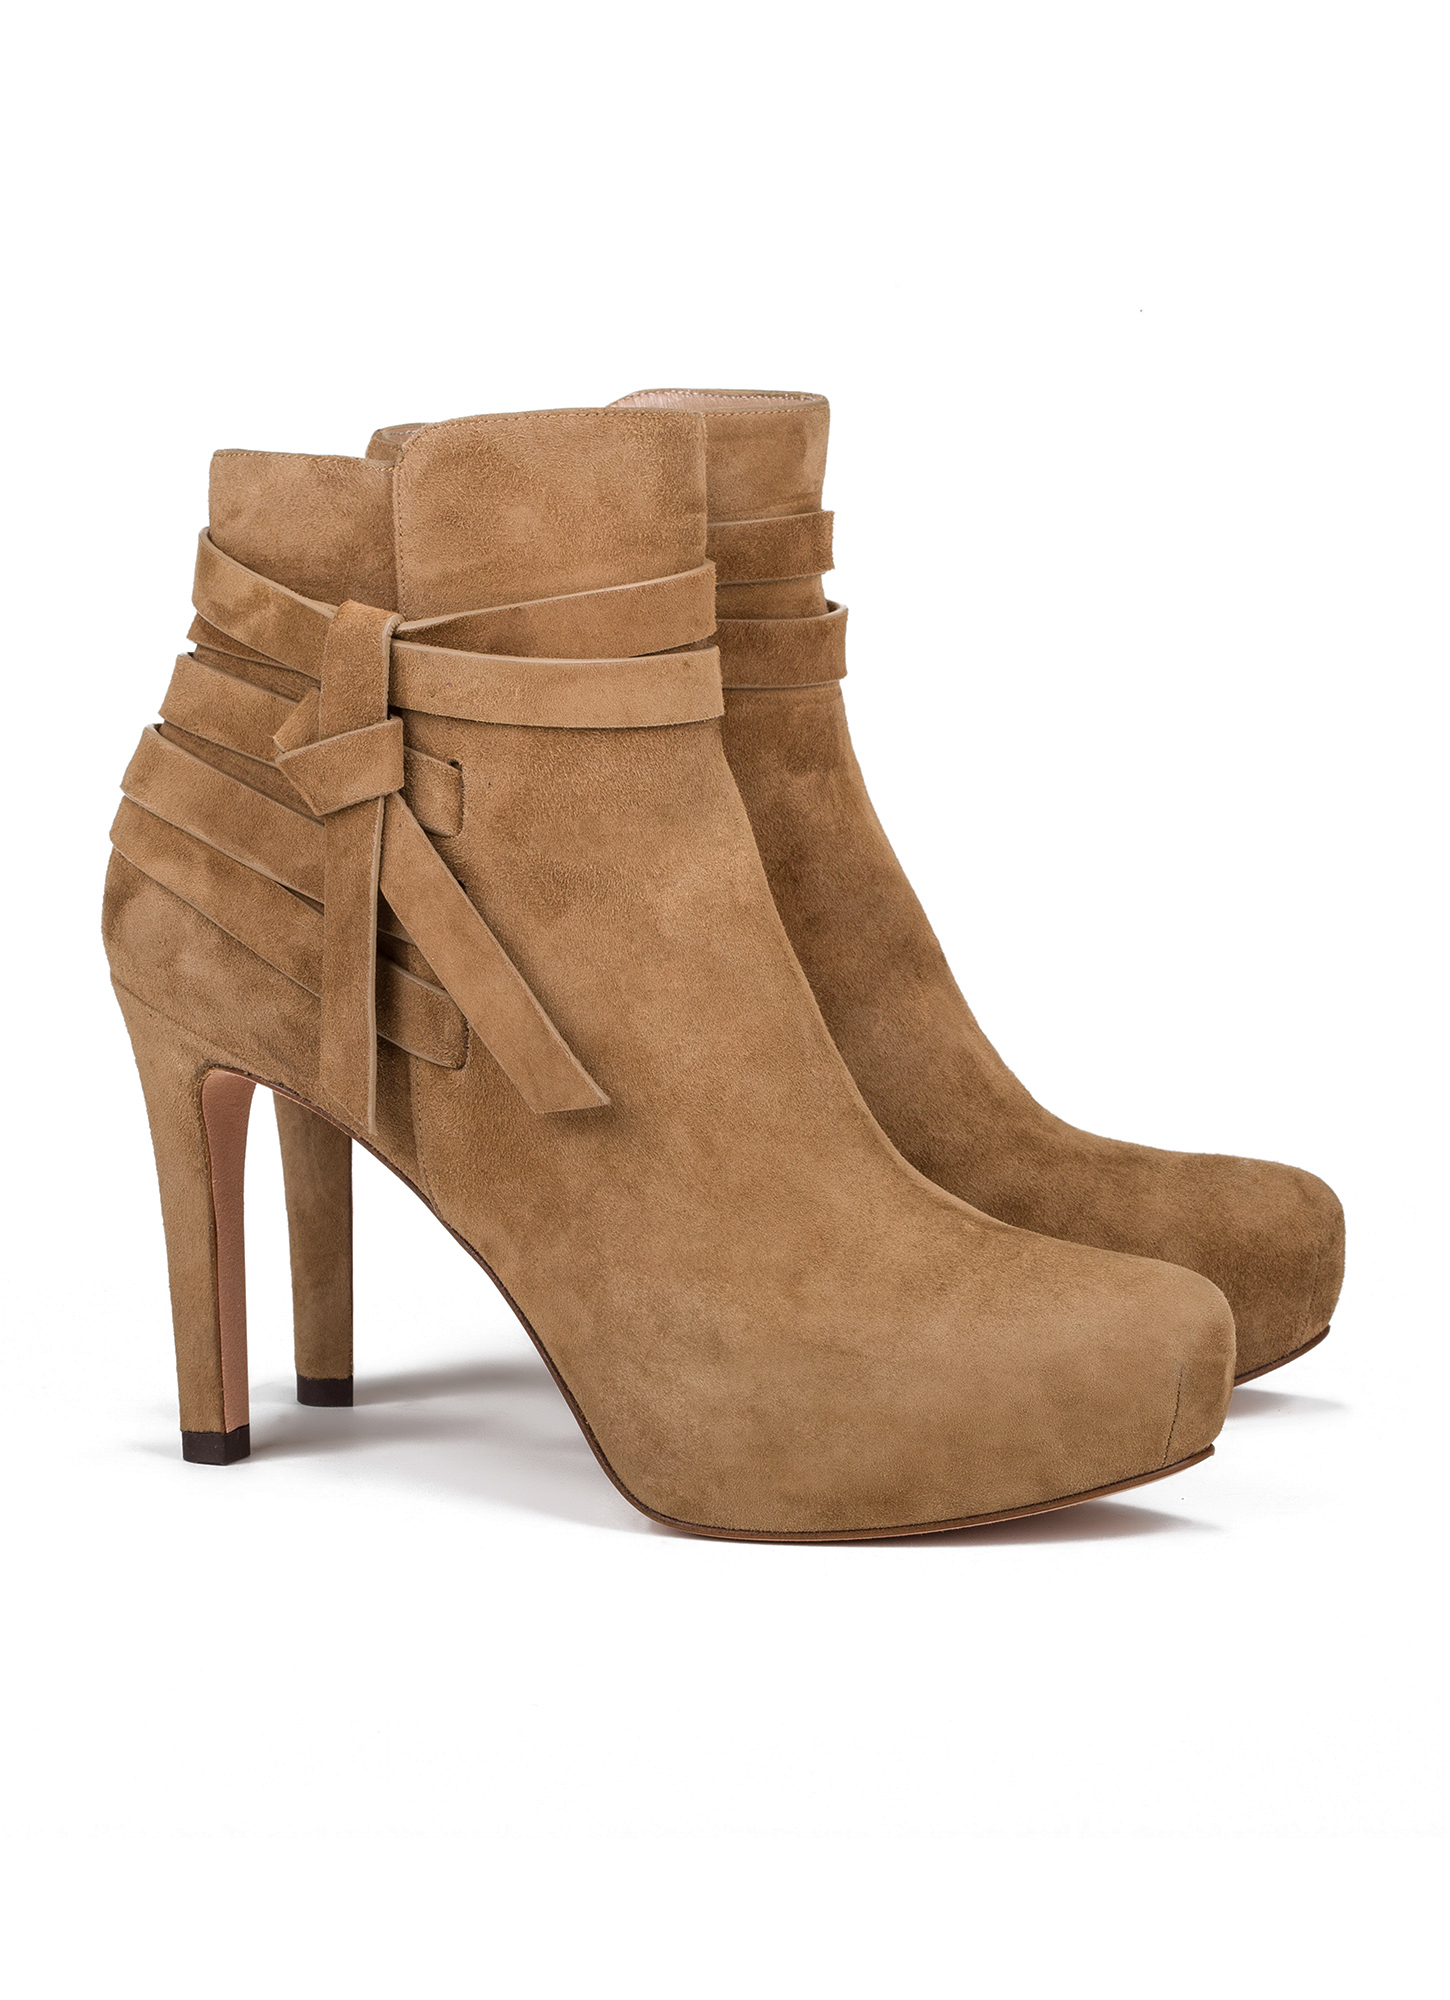 Mid Heel Ankle Boots In Camel Suede Online Shoe Store